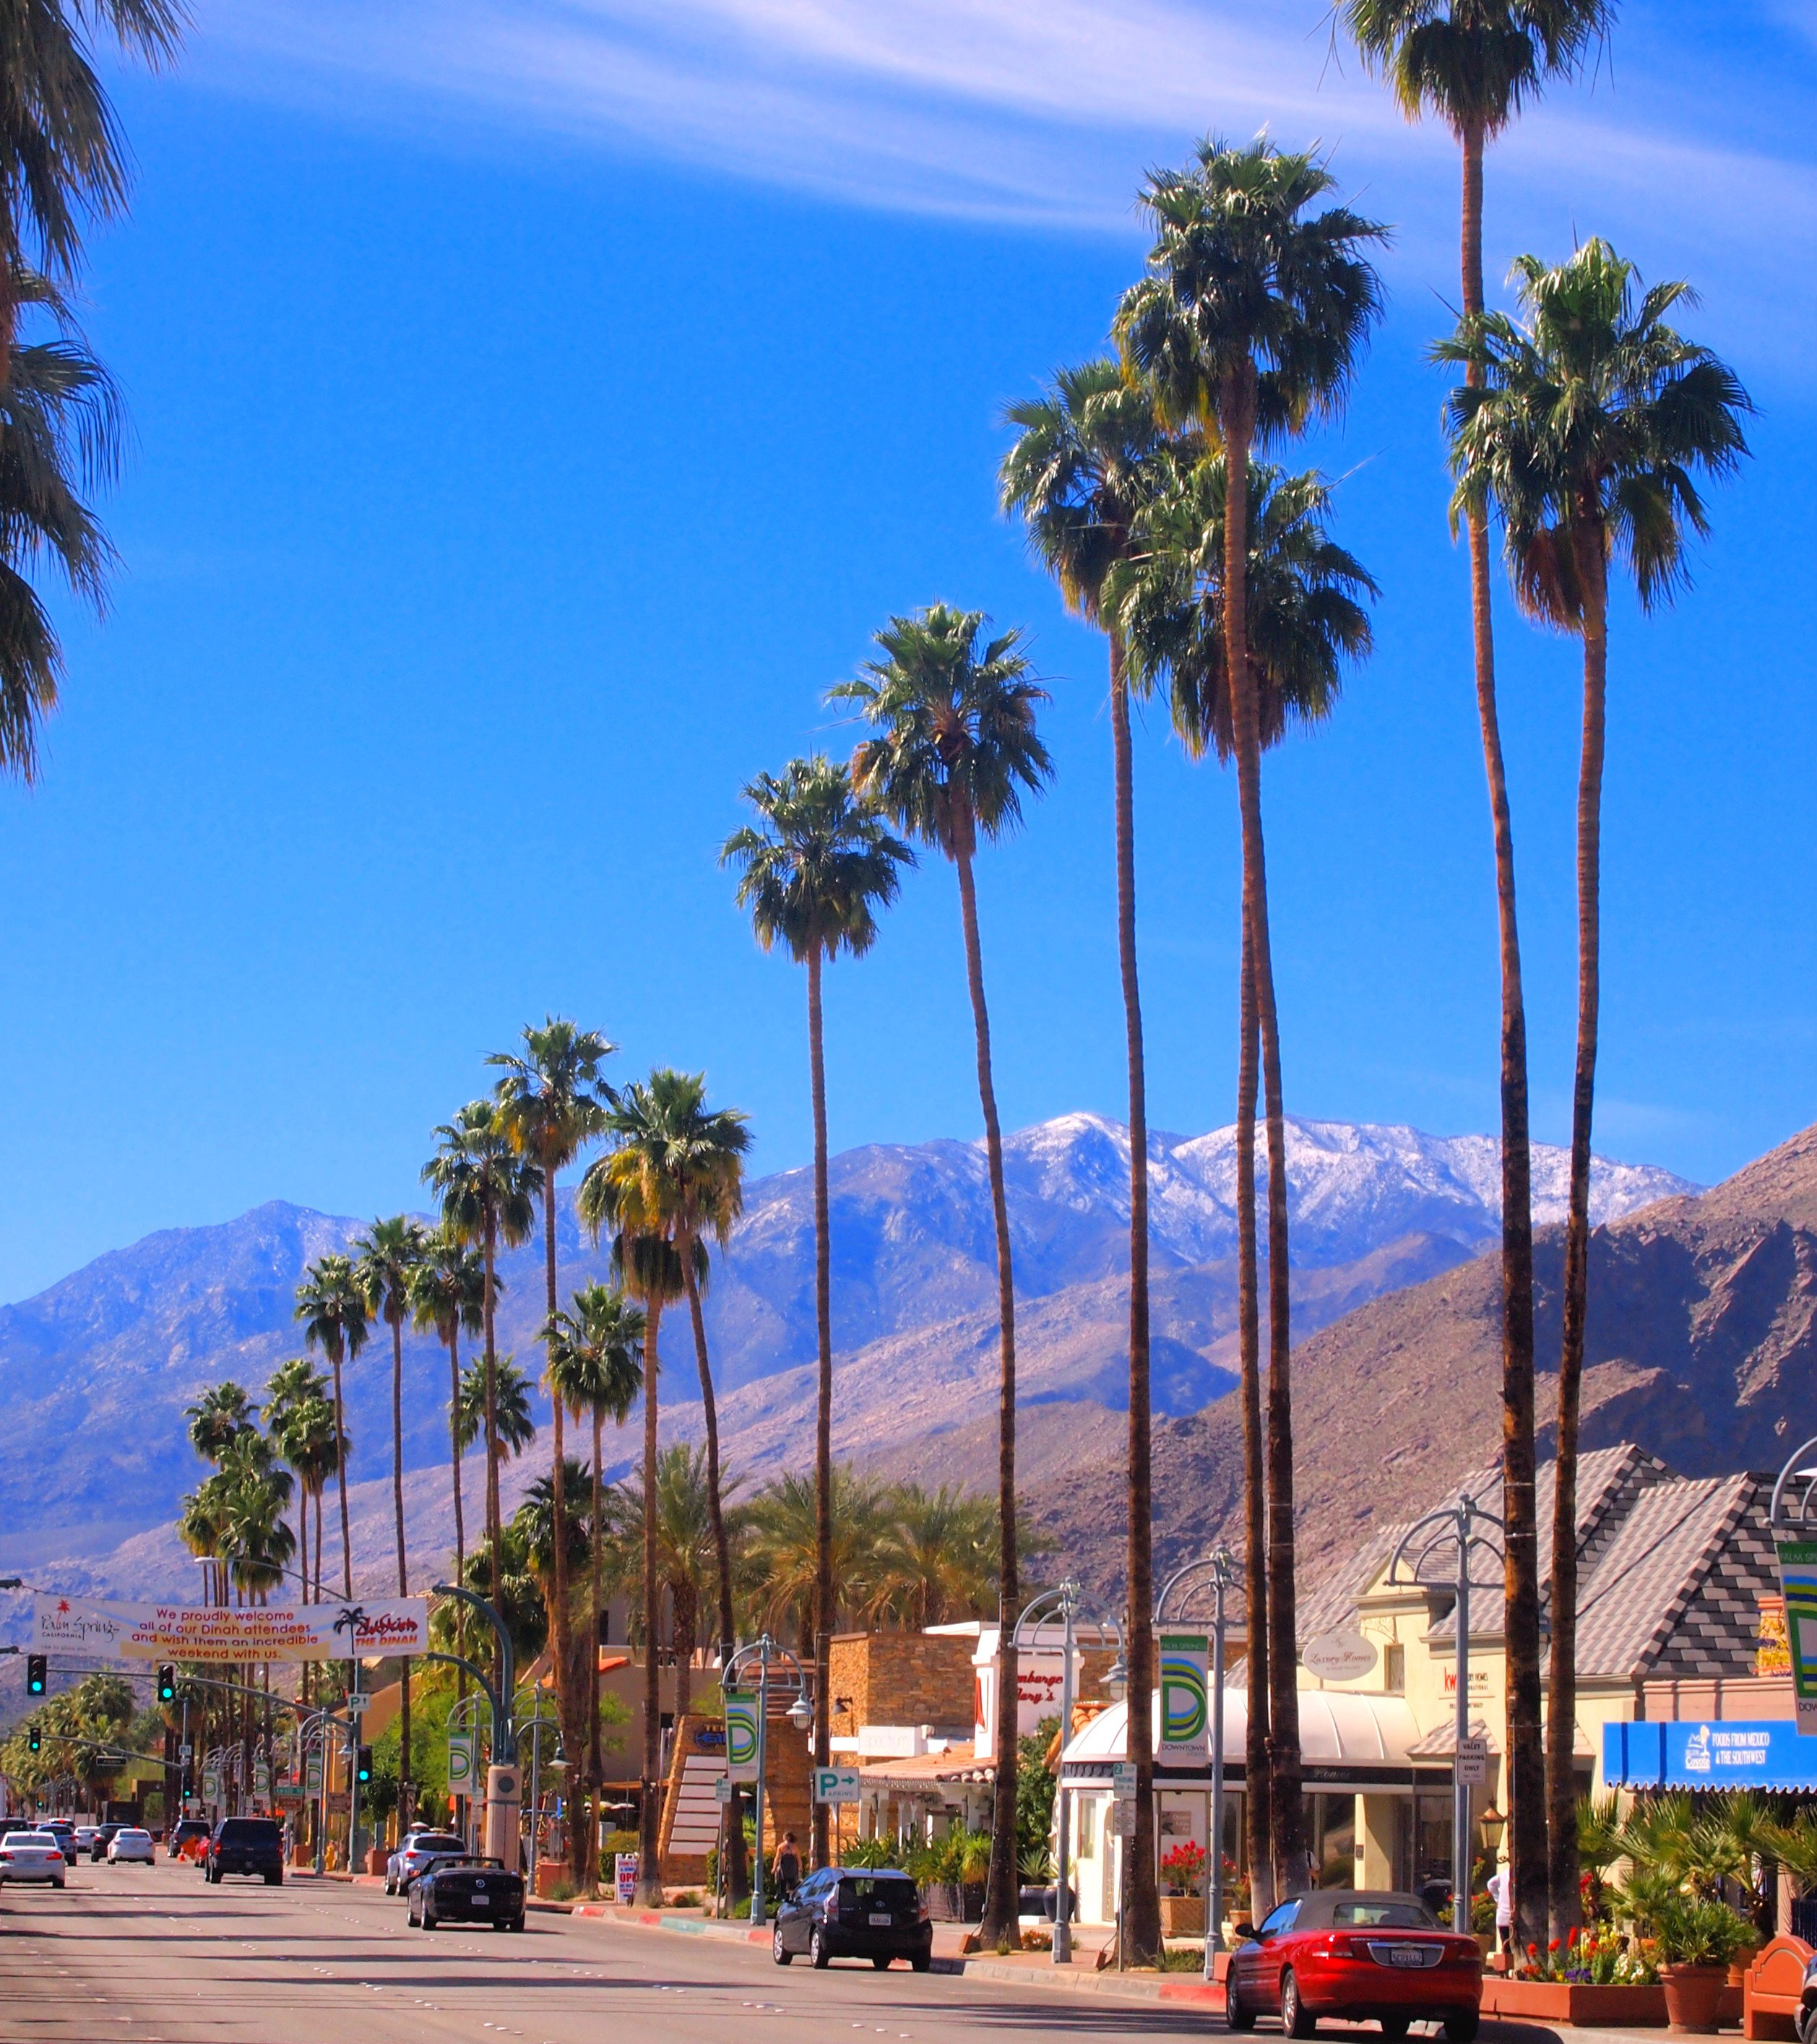 Palm trees line storefronts on Palm Canyon Drive with mountains in the background.